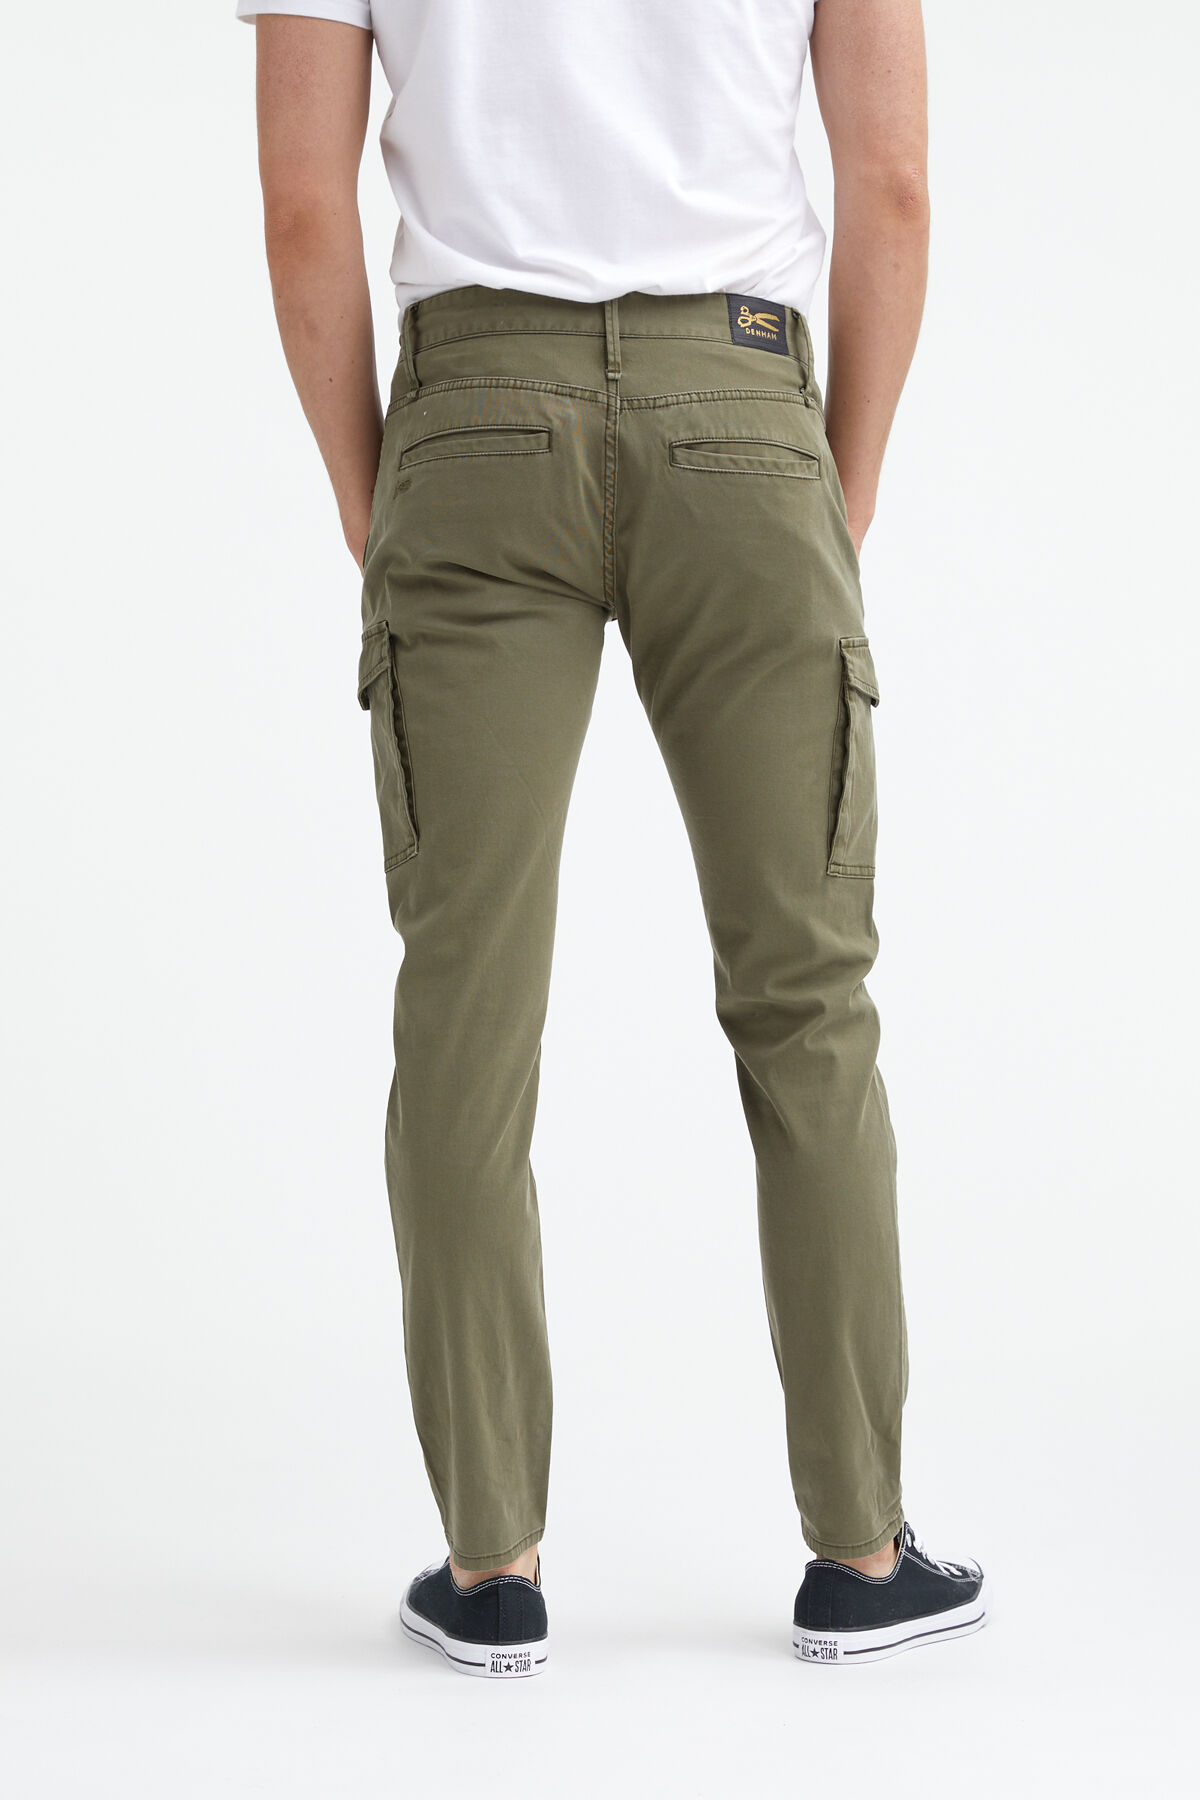 YORK CARGO Left Hand Twill - Slim, Tapered Fit